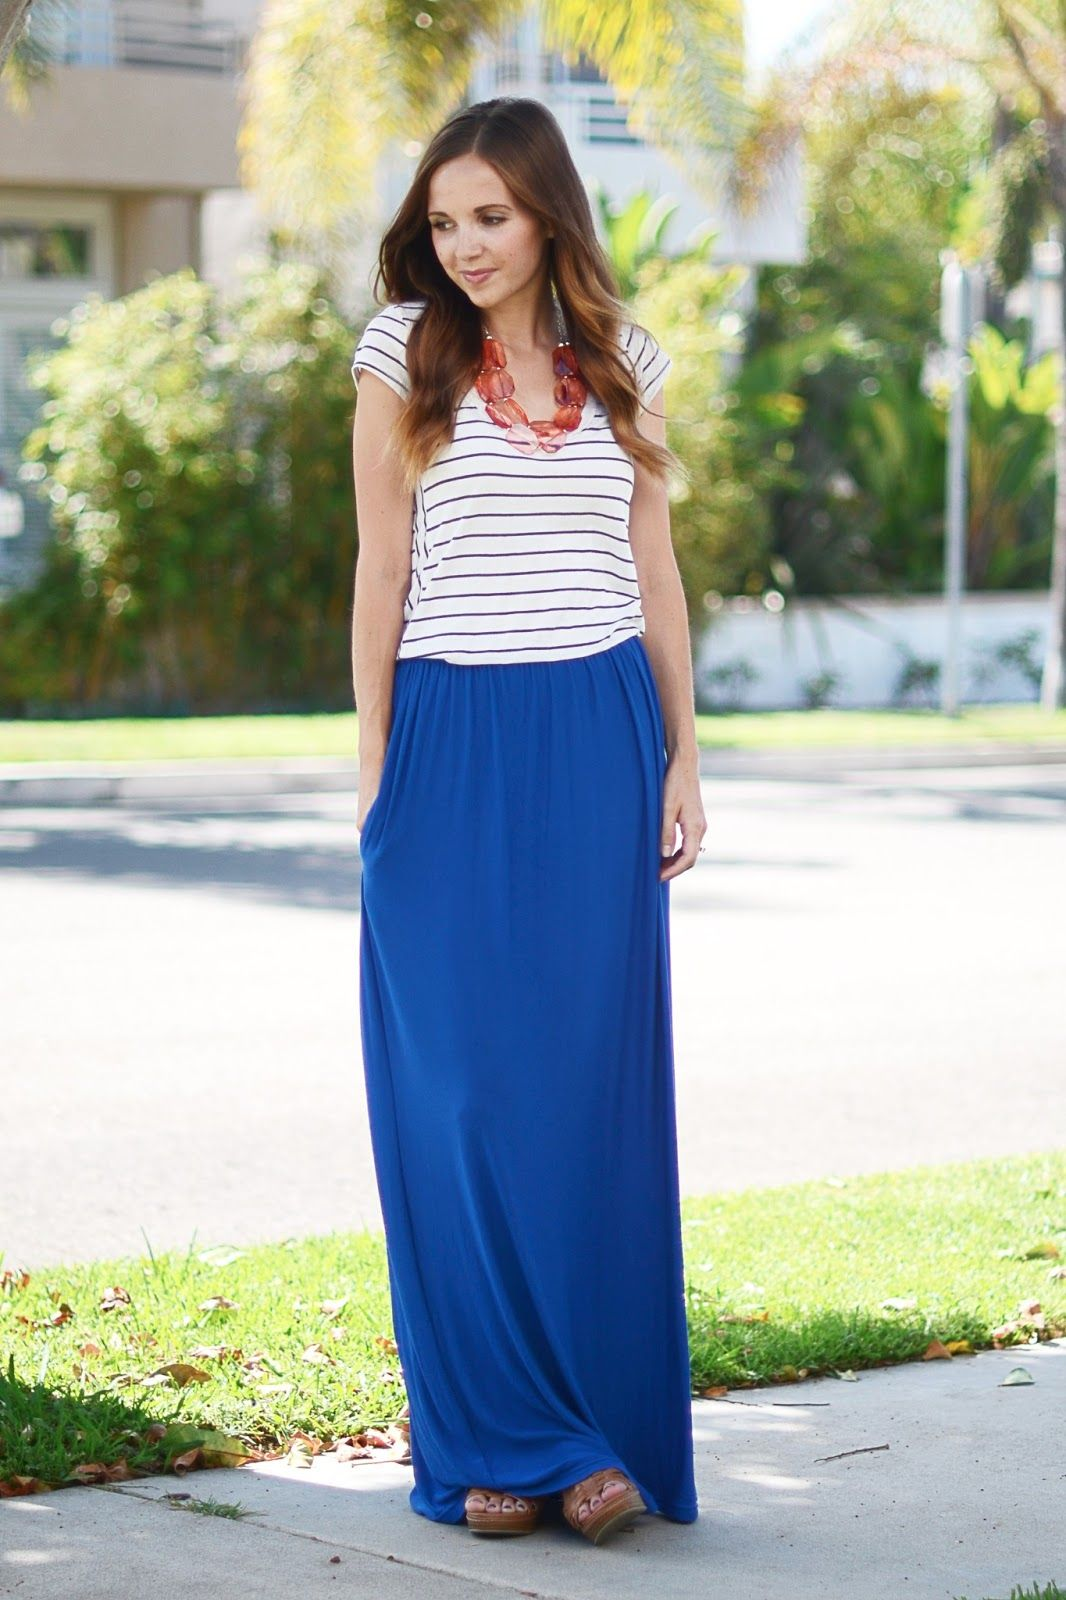 Royal blue maxi skirt, striped t shirt and statement necklace ...